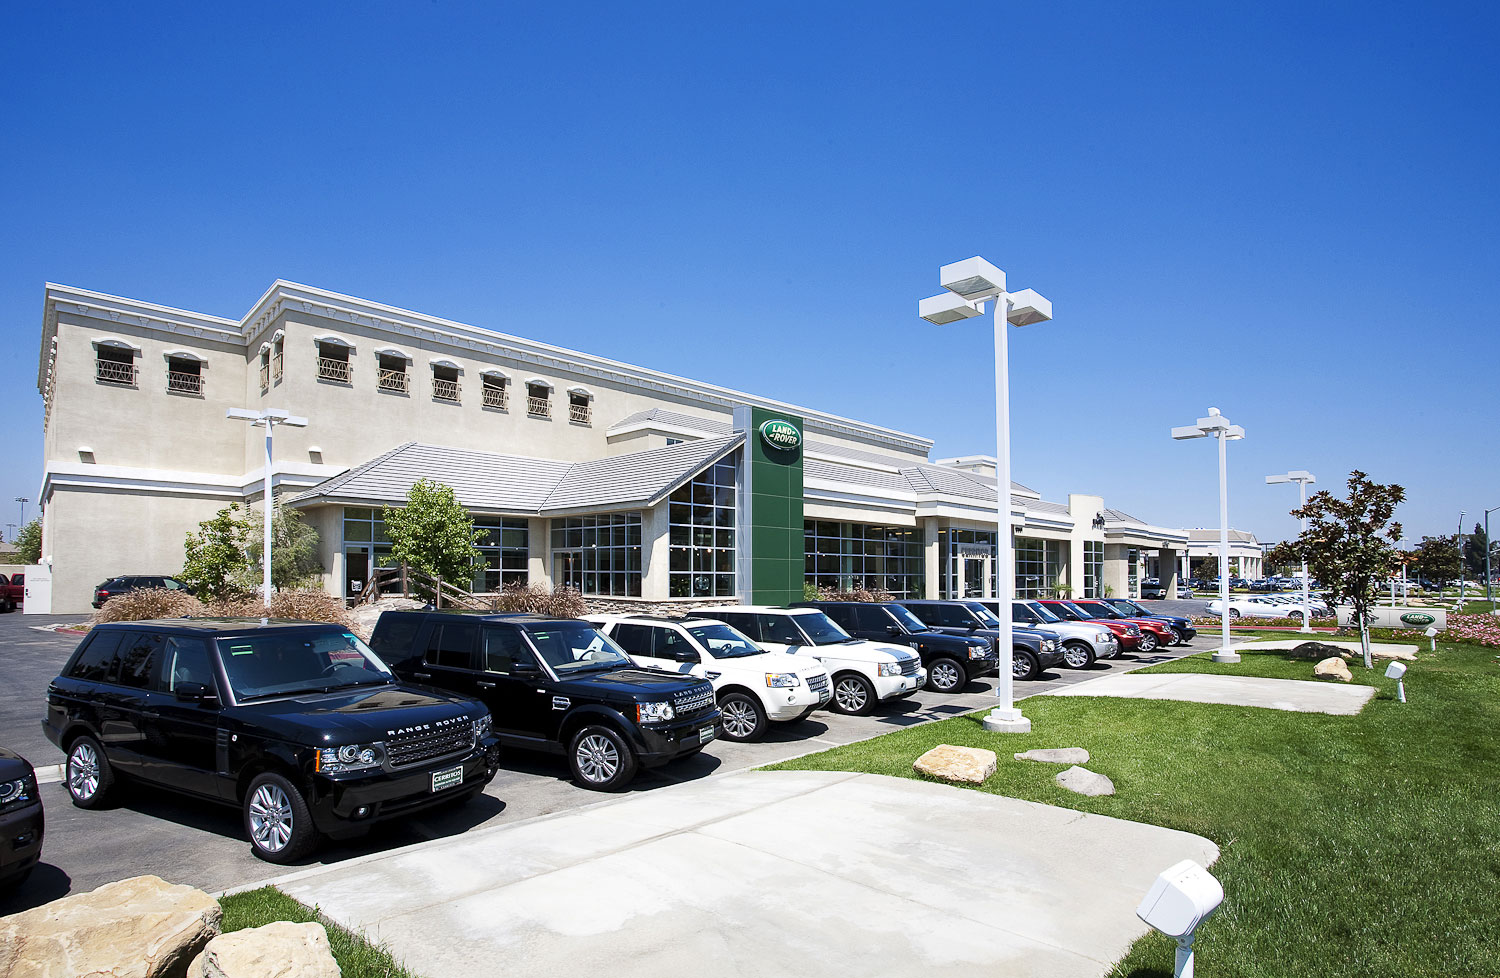 Land Rover Anaheim Hills >> Matson Architects Inc.: Serving Los Angeles and Orange County